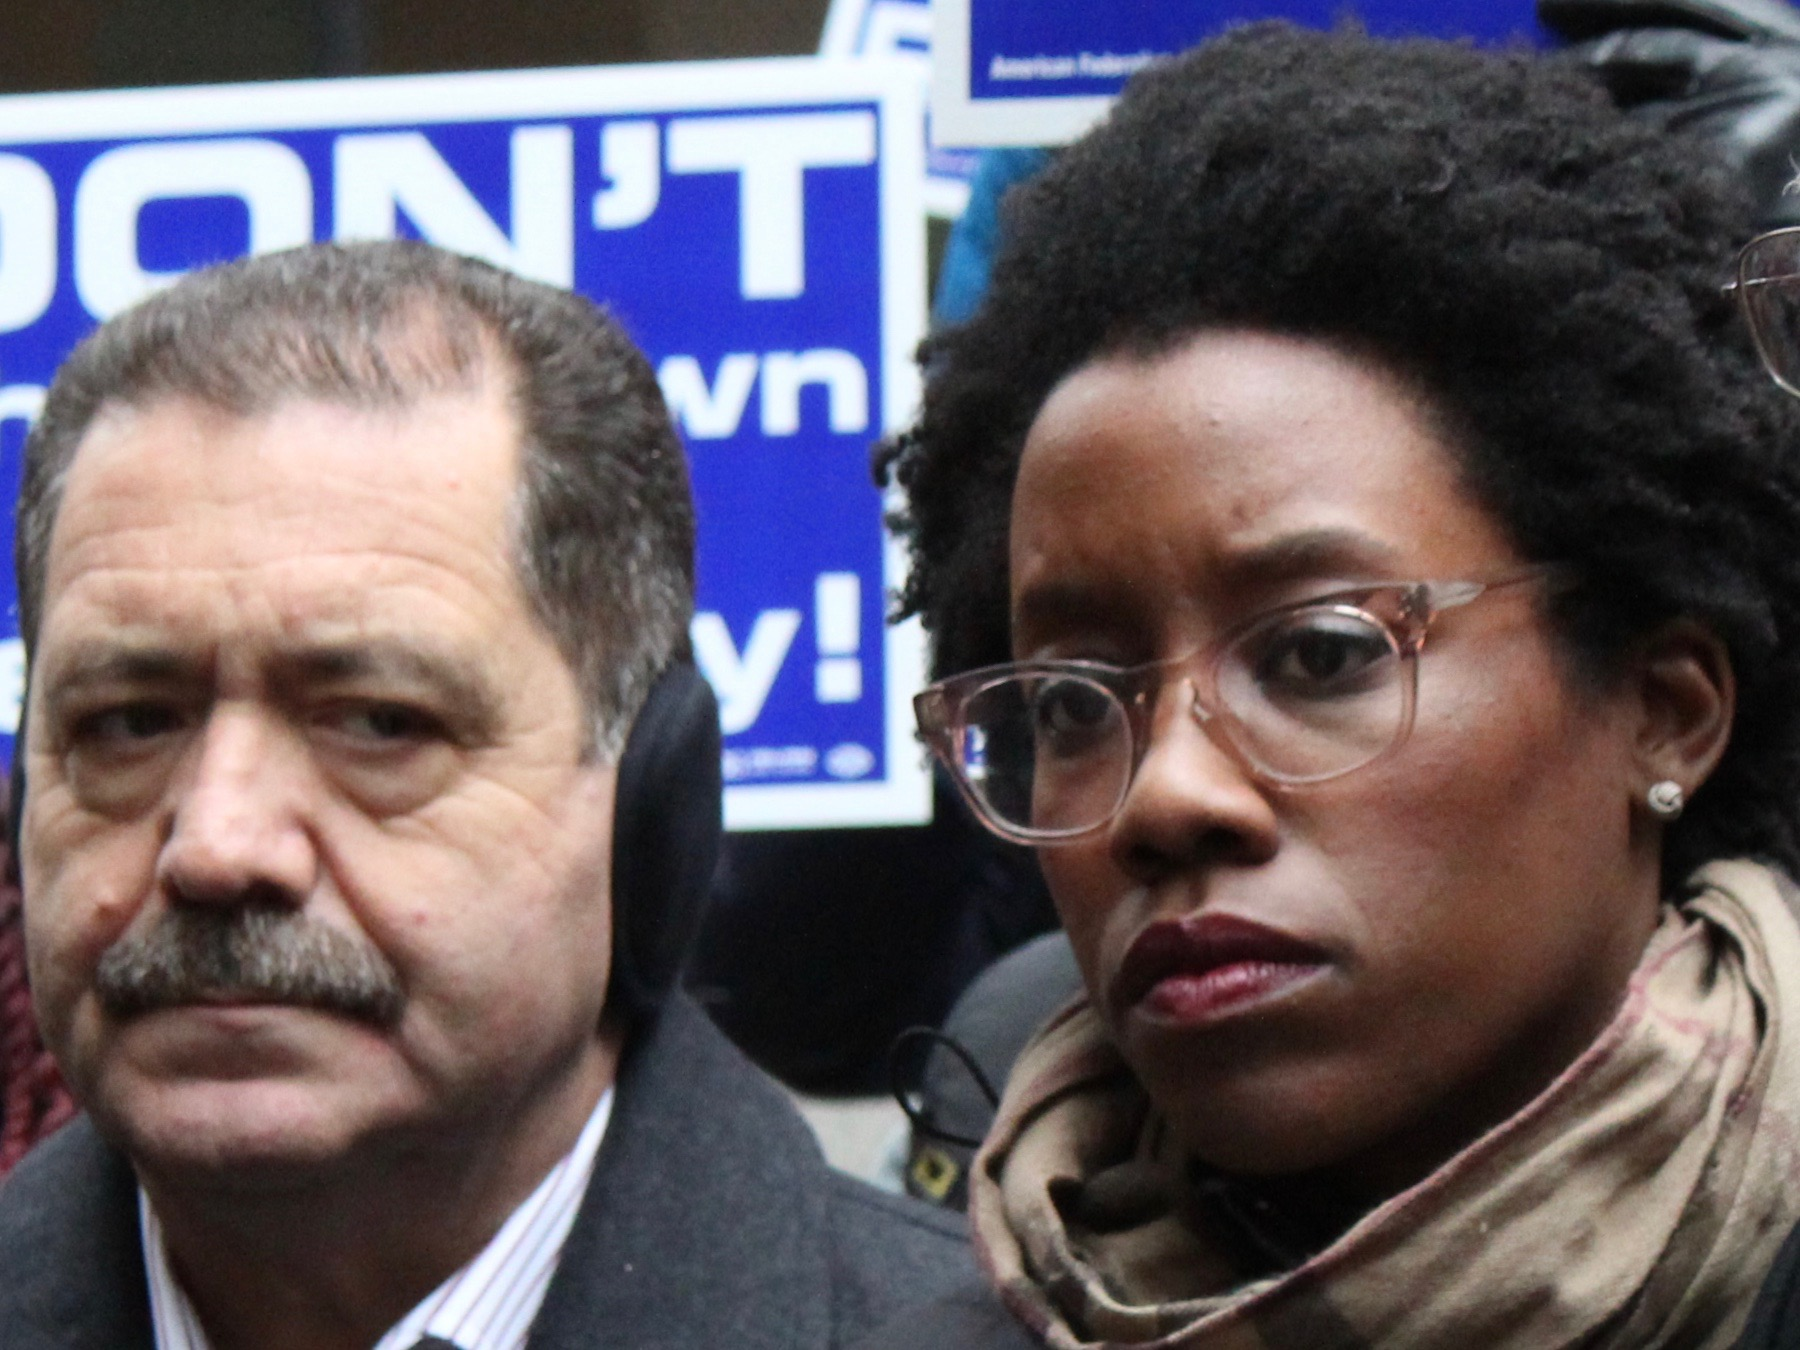 """U.S. Rep. Lauren Underwood (right) came out in support of a formal congressional impeachment inquiry into President Trump this week, backing a move already taken by U.S. Rep. Jesus """"Chuy"""" Garcia (left). (One Illinois/Ted Cox)"""